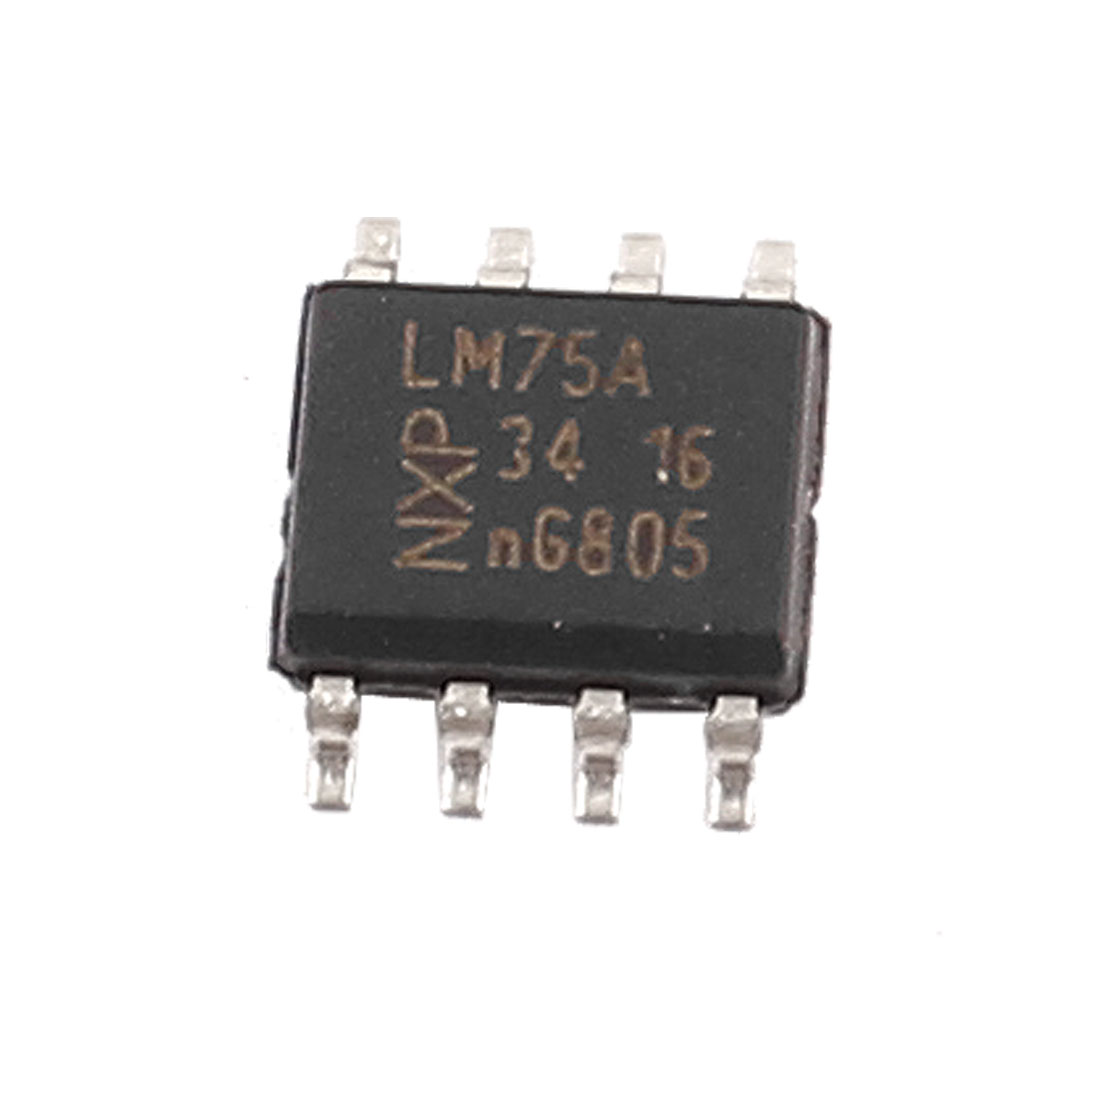 LM75A LM75AD Electronic Parts SMD SMT SOP-8 8 Pins Transceiver IC Chip